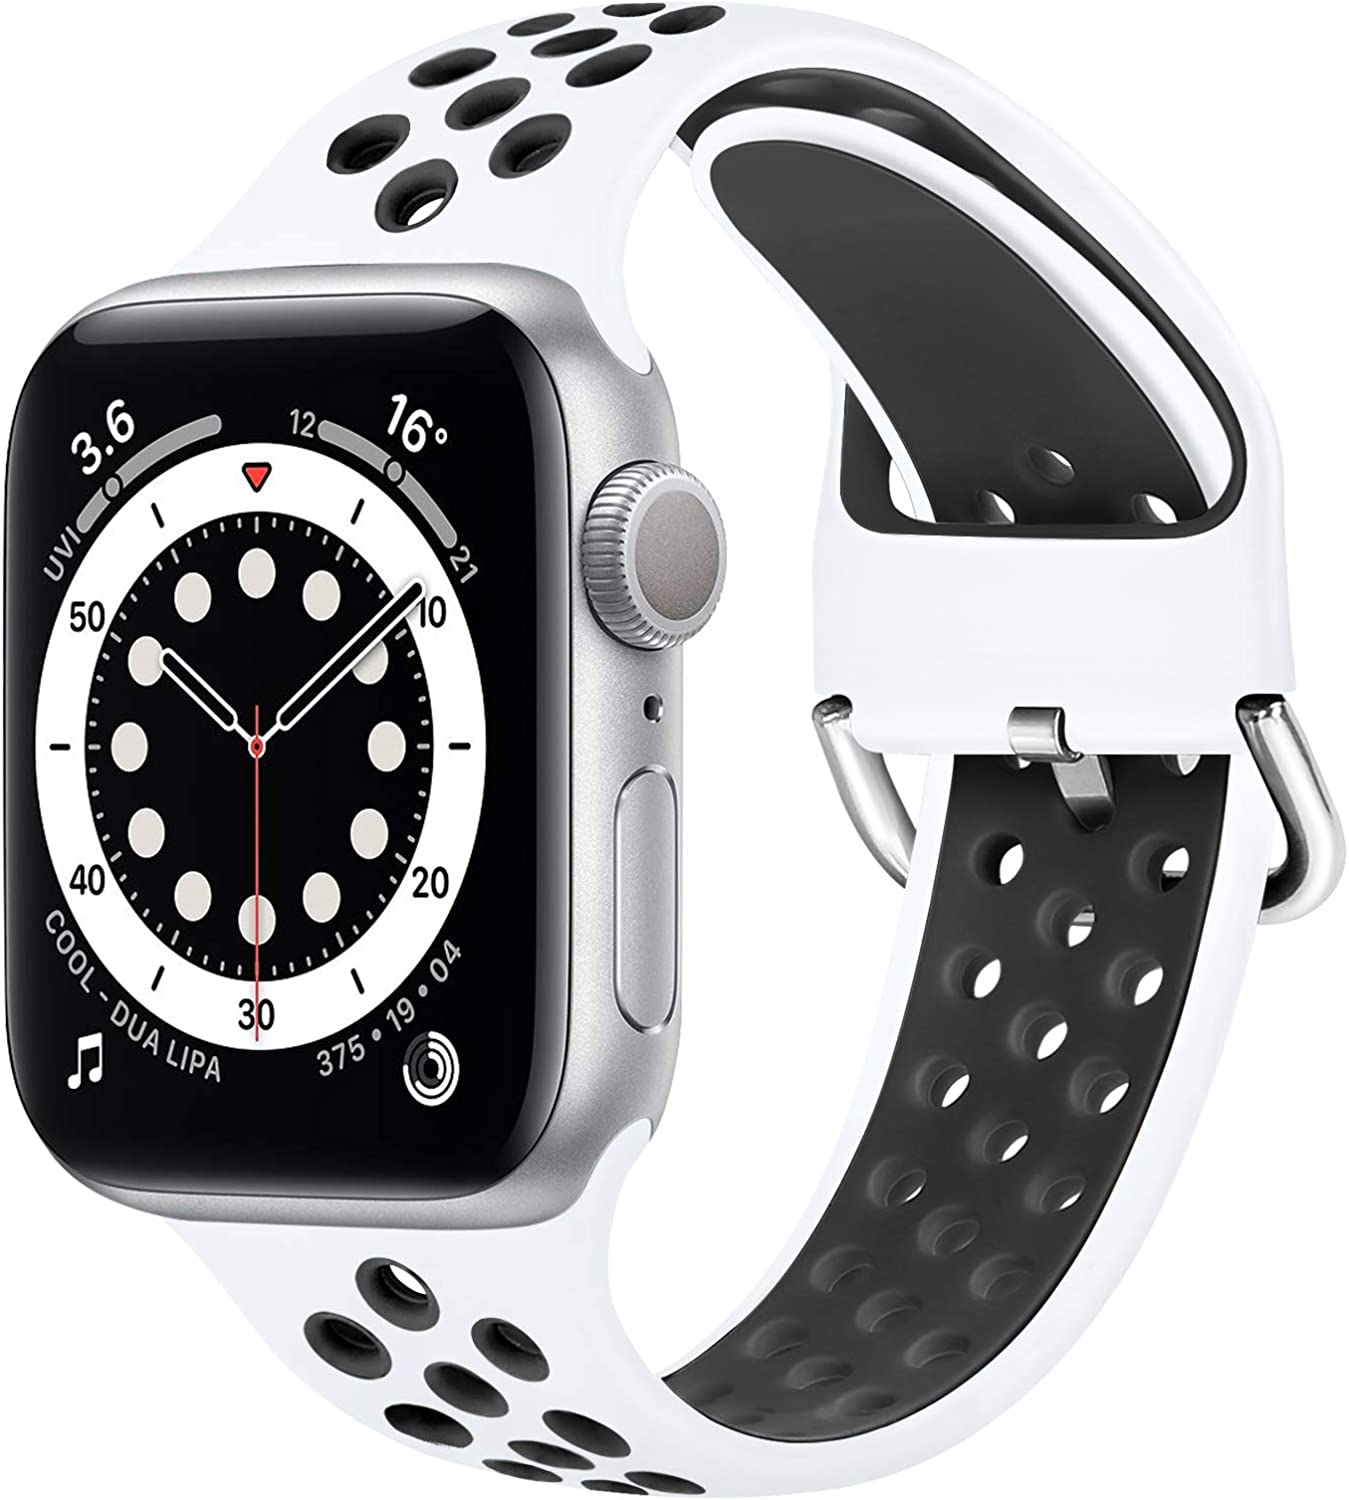 WNIPH Silicone Sports Bands Compatible with Apple Watch Band 42mm 44mm, Soft Breathable Silicone Straps Replacement Wristband for iwatch Series 6/5/4/3/2/1/SE for Men Women (White Black, 42mm/44mm)